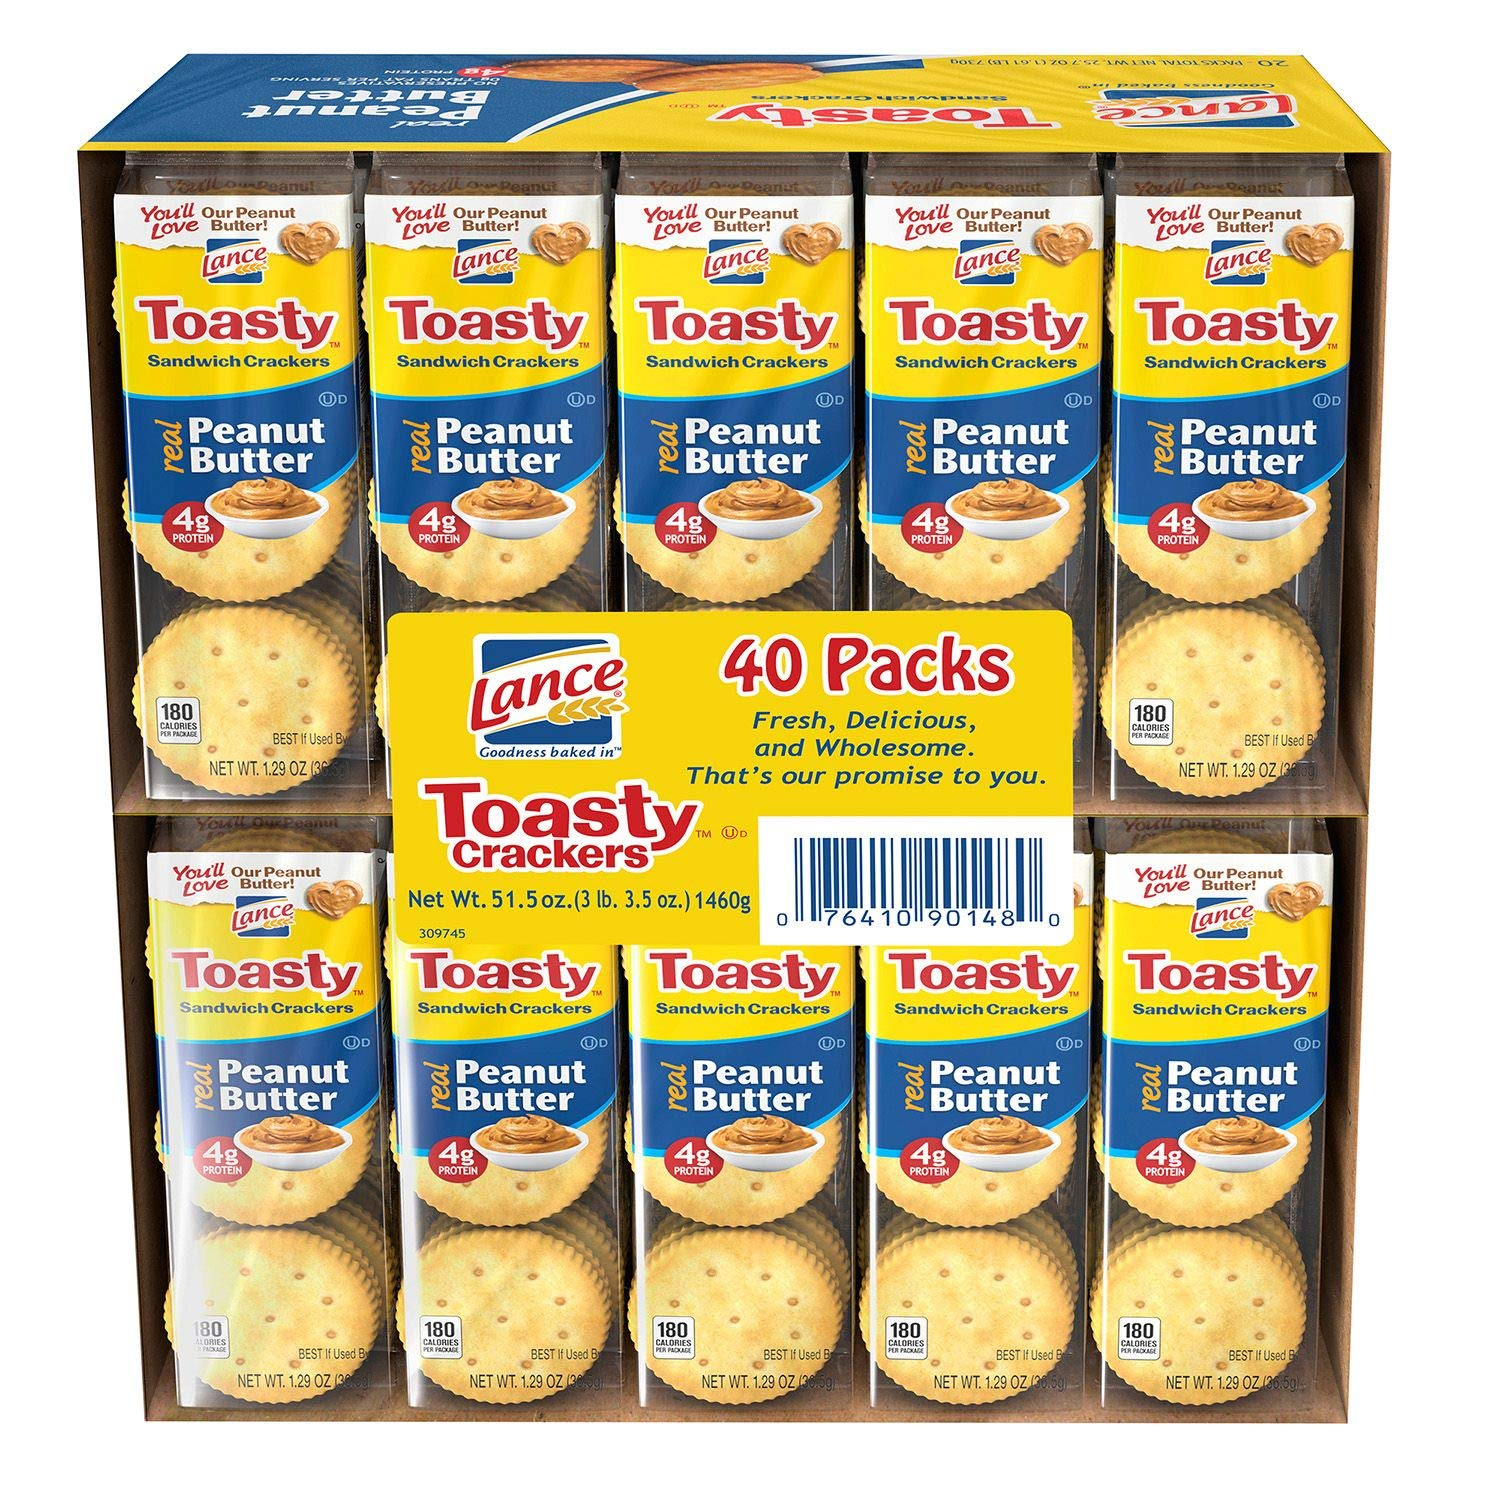 Lance Toasty Peanut Butter Sandwich Crackers (40 ct.) Pack of 2